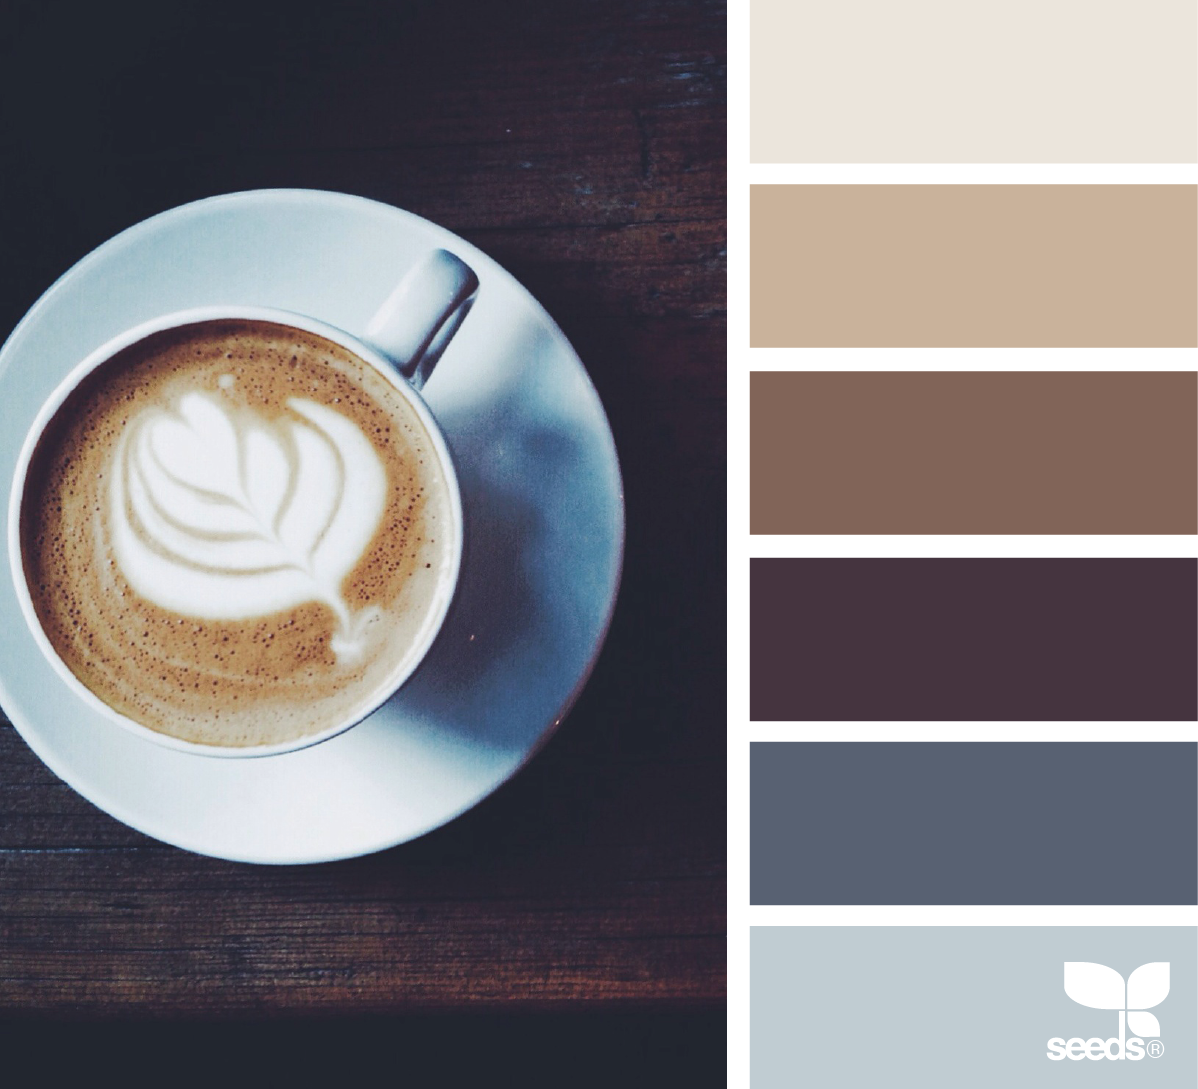 color inspiration board from photo of cup of coffee